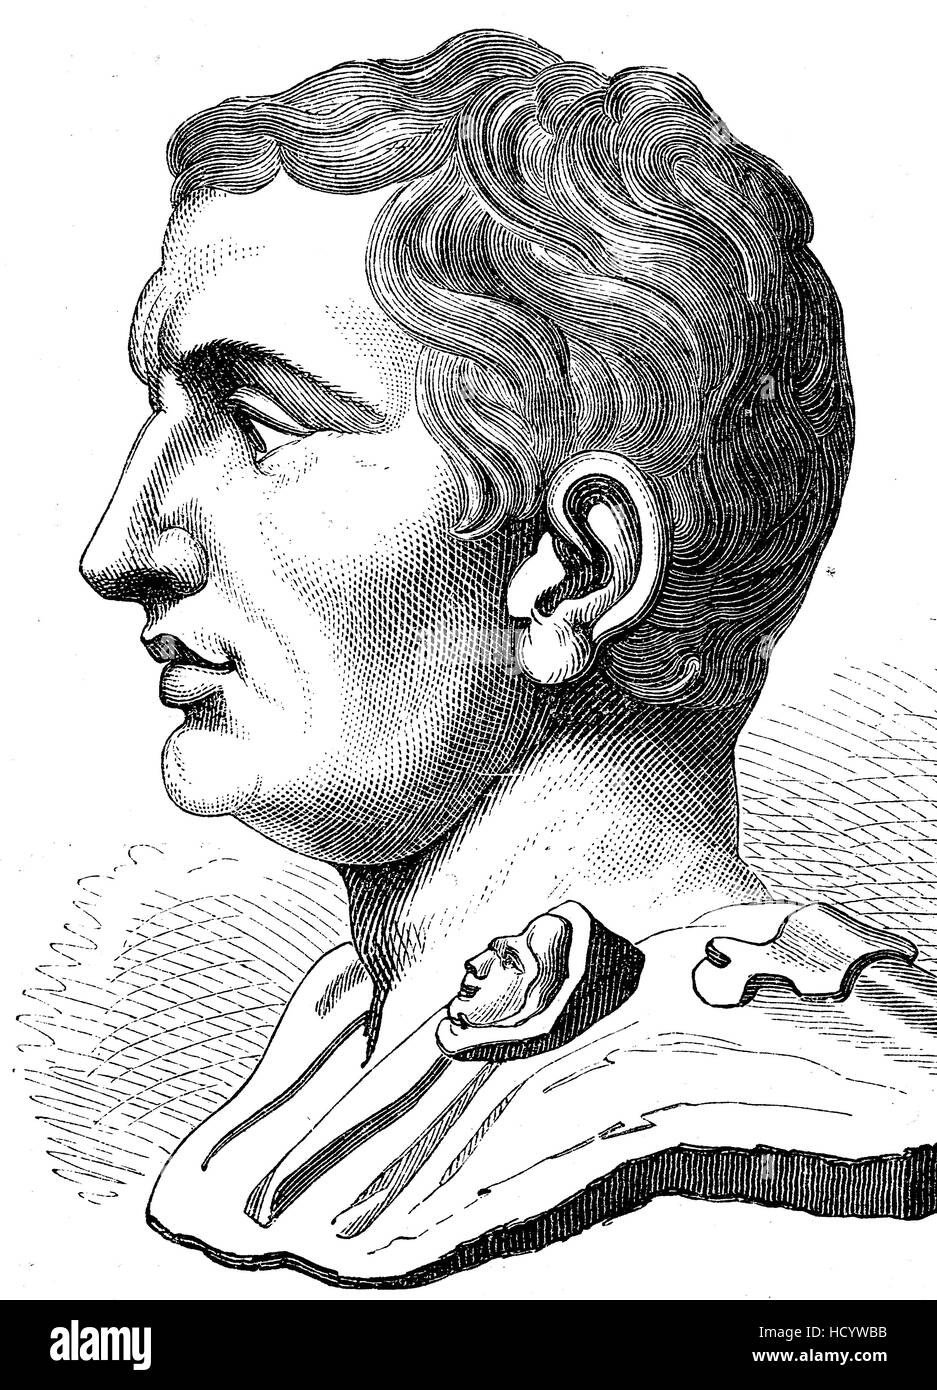 Gnaeus Pompeius Magnus, 106 BC - 48 BC, Pompey, Pompey the Great, a military and political leader of the late Roman - Stock Image